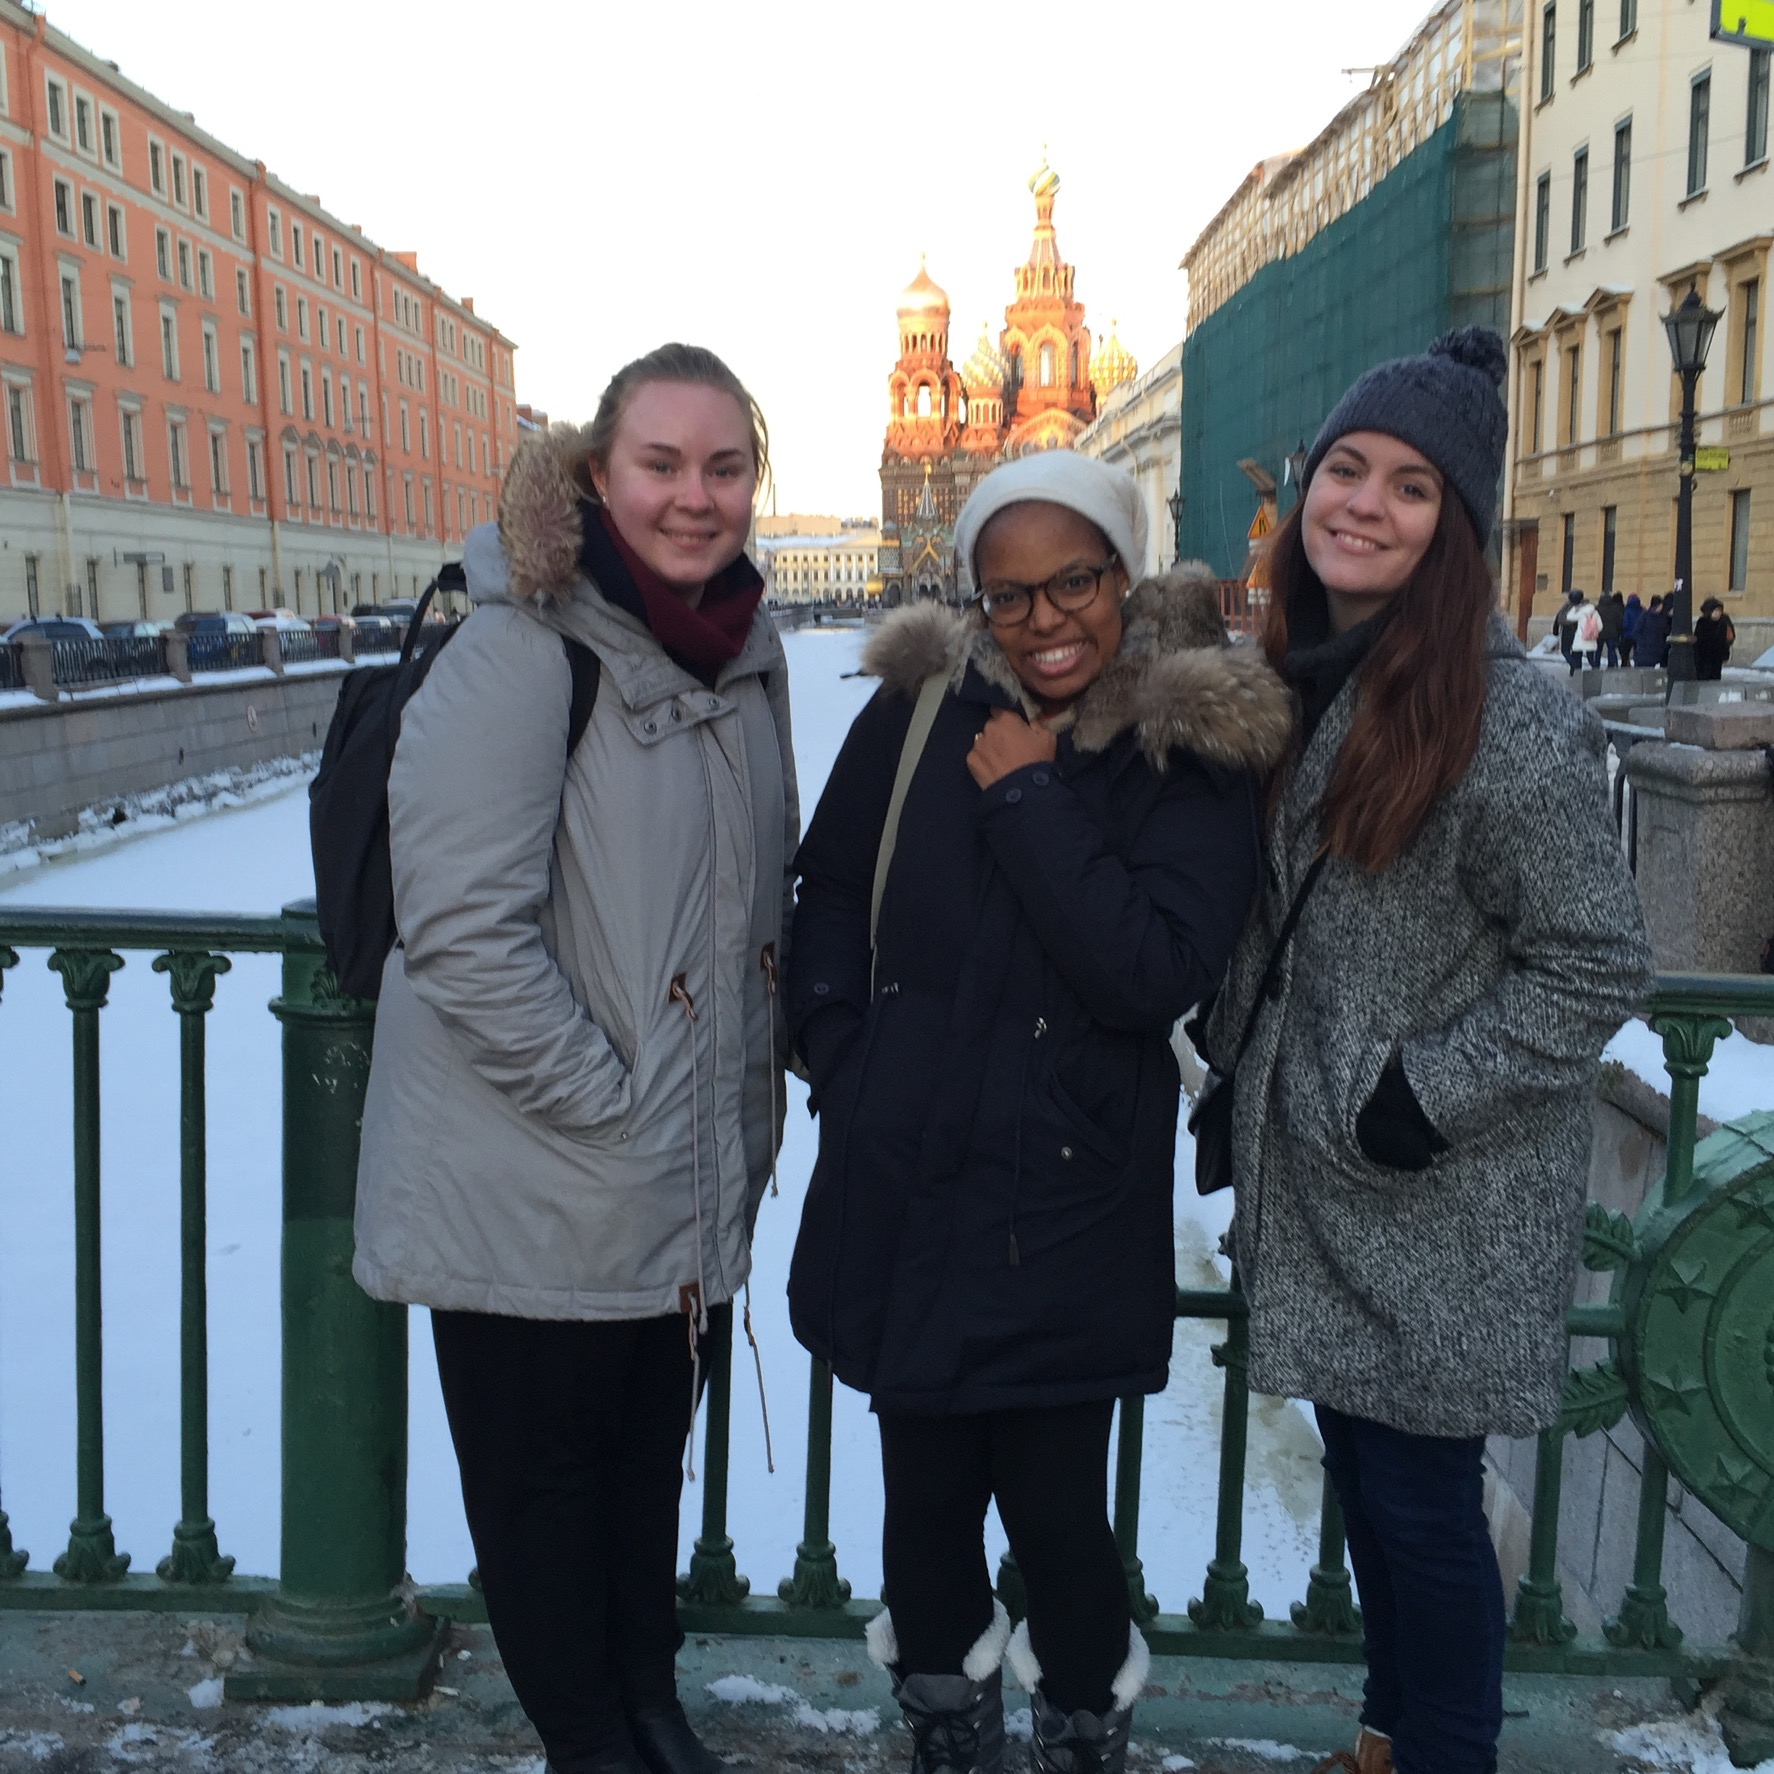 With Siobhan and Klara in St Petersburg with the Cathedral of the Spilled Blood in the background